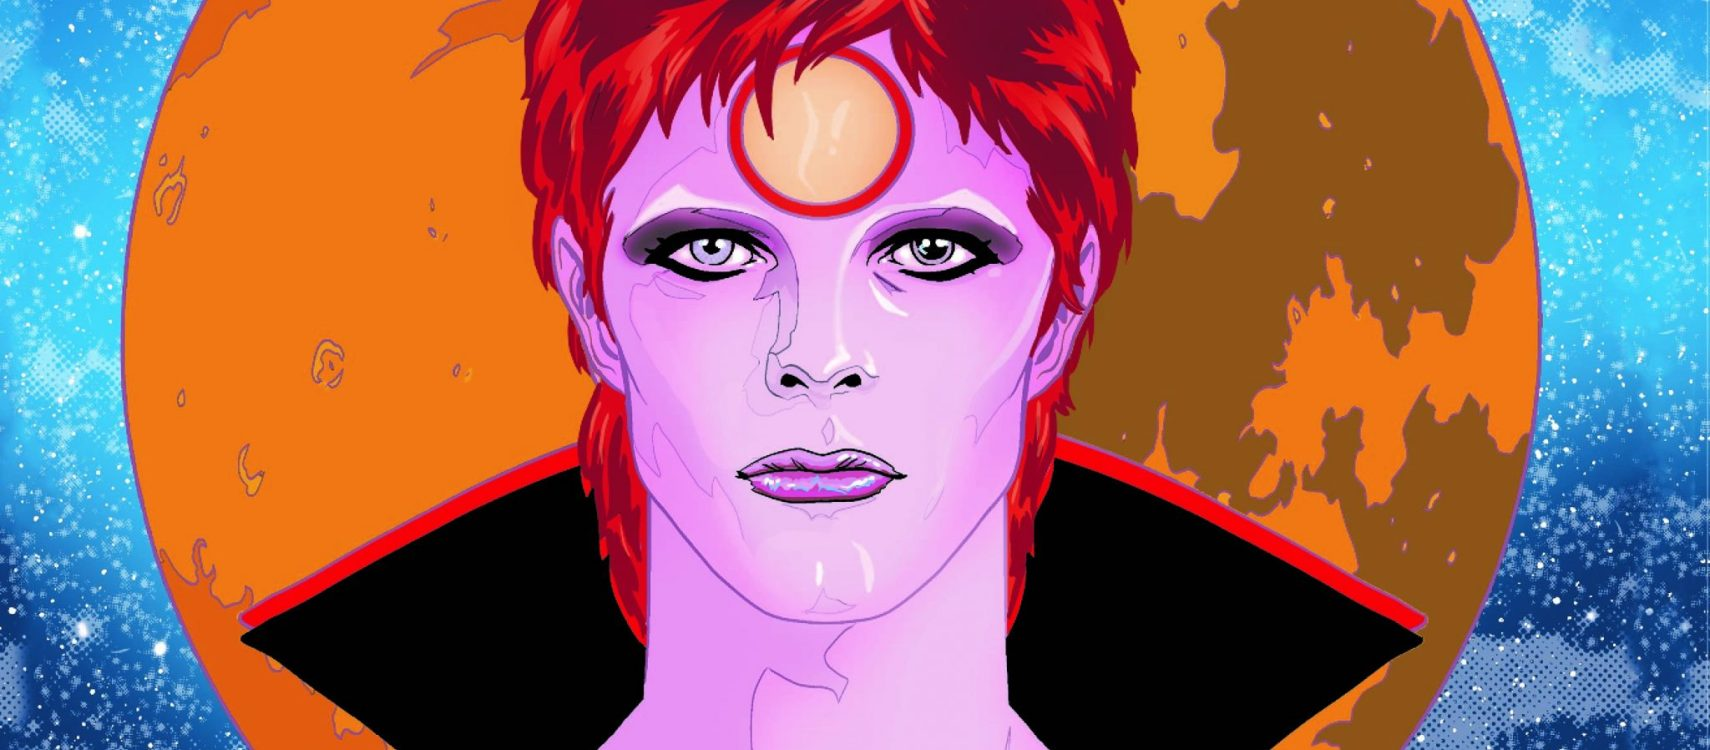 Bowie - Stardust, Rayguns & Moonage Daydreams